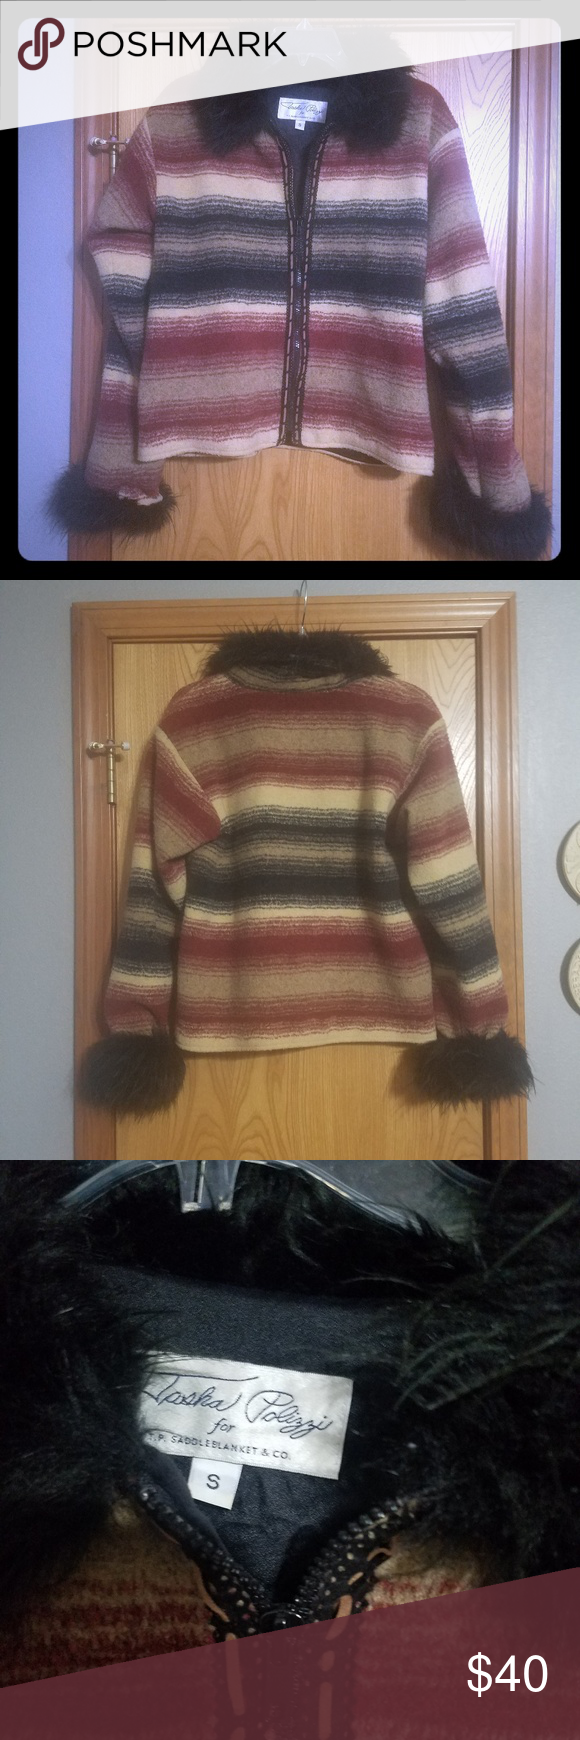 ac6fd671c0f Tasha Polizzi saddle blanket jacket Really sweet warm jacket. Beautiful black  fur collar and edge of sleeves. Tan maroon and black in color. Pit to pit  19